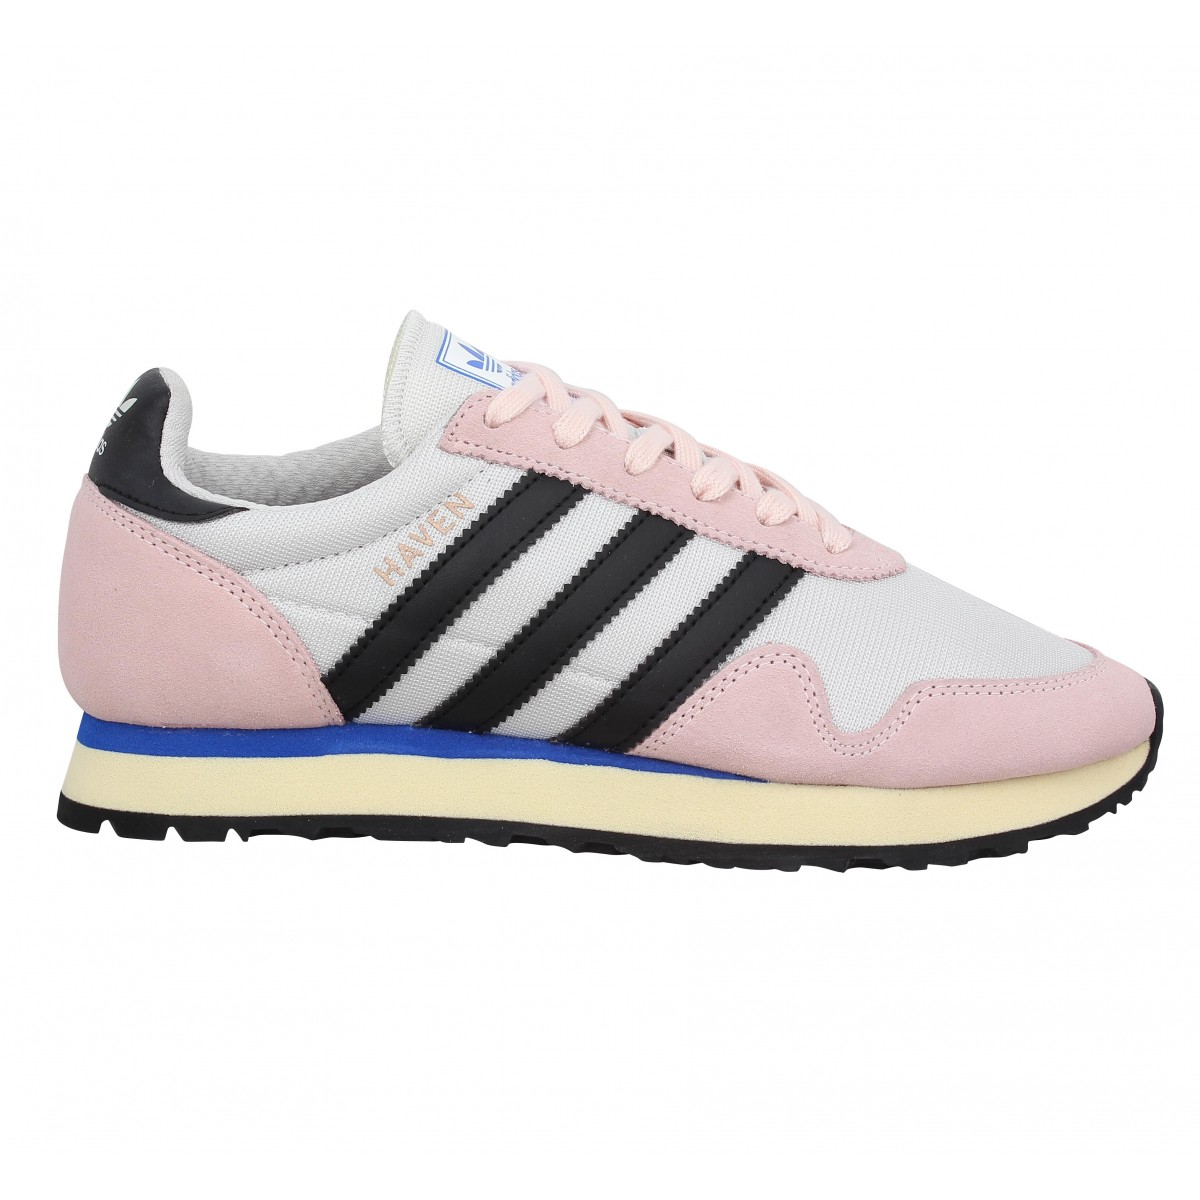 Adidas haven toile femme rose femme | Fanny chaussures